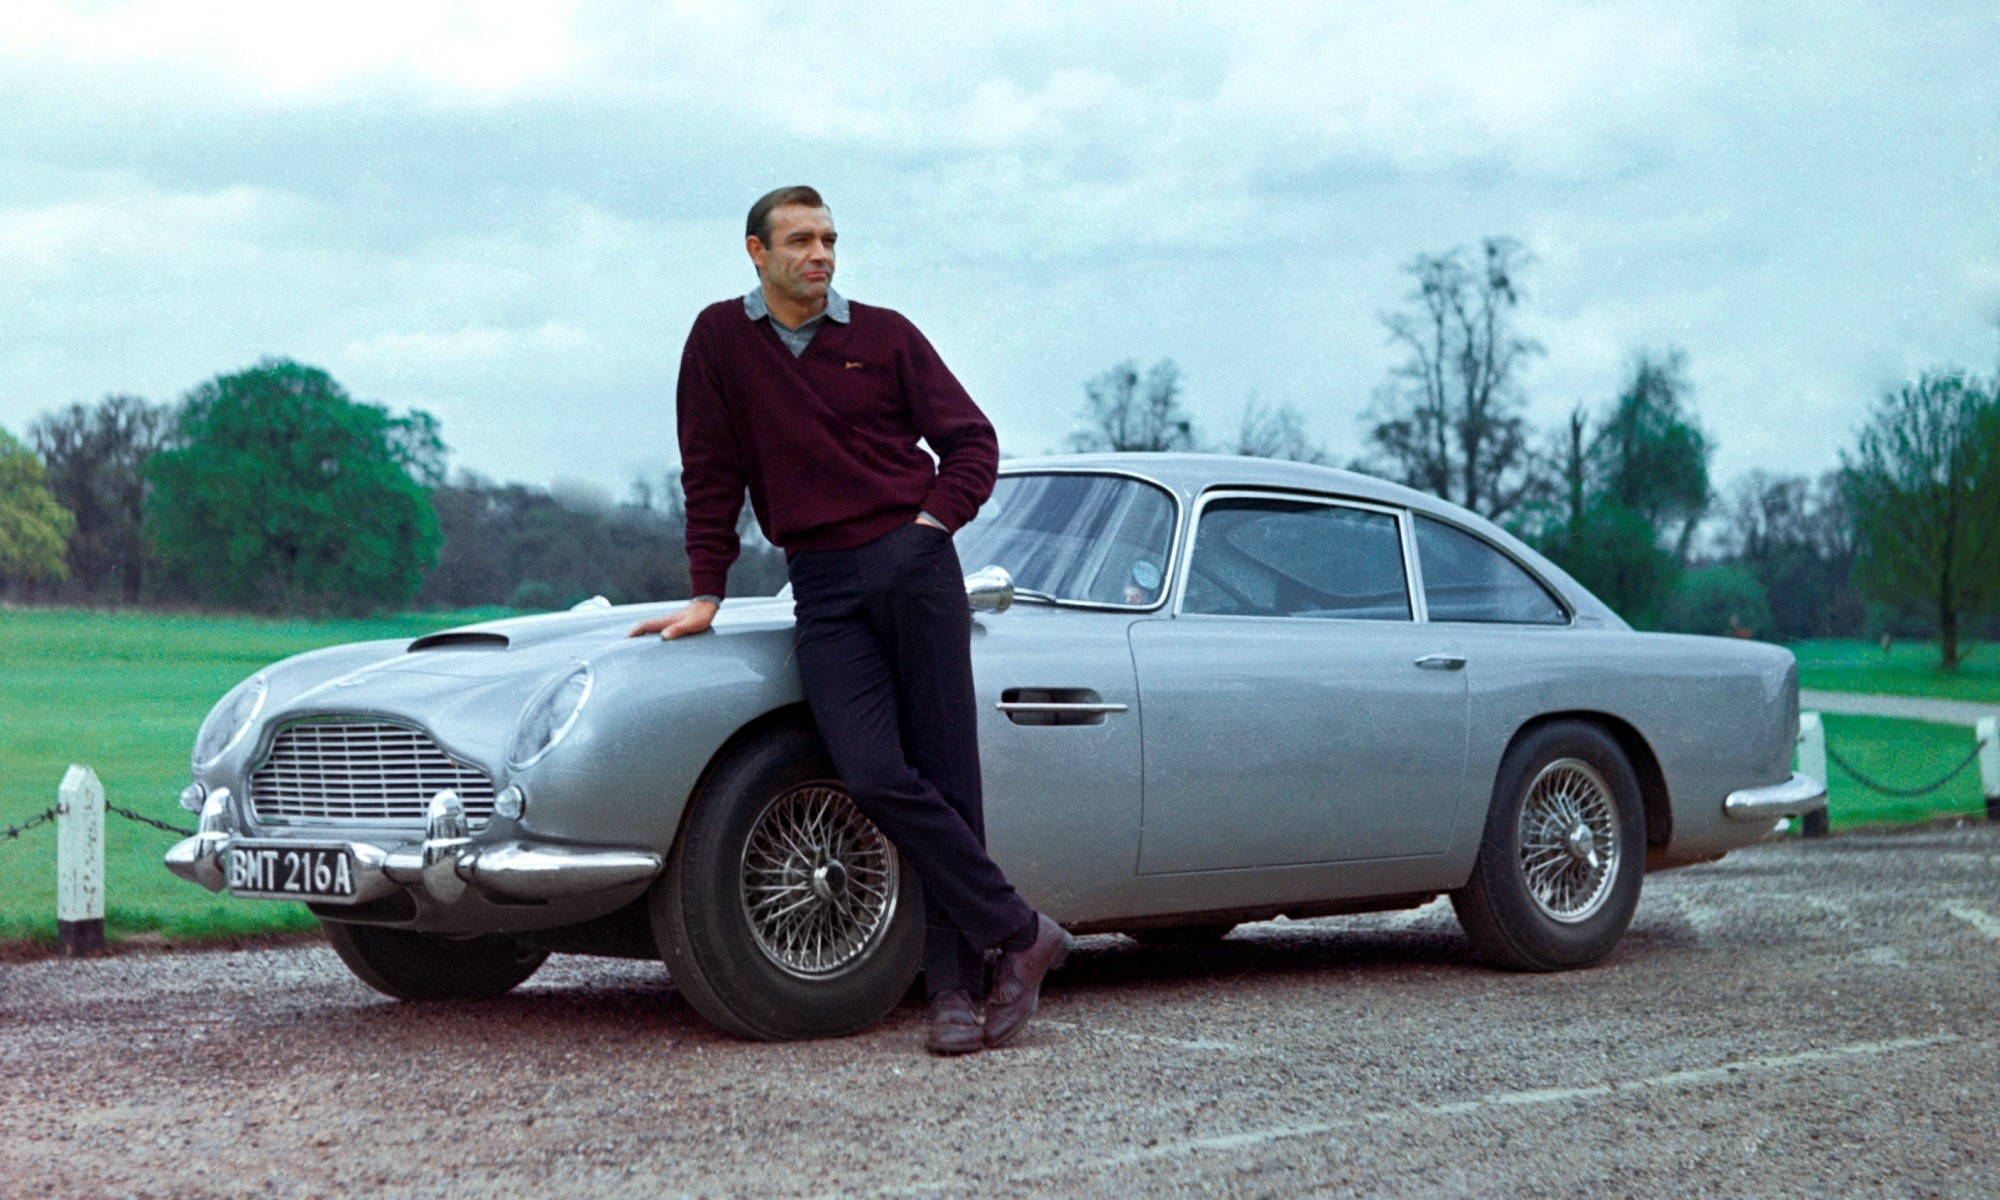 Sean Connery as James Bond with the famous Aston Martin